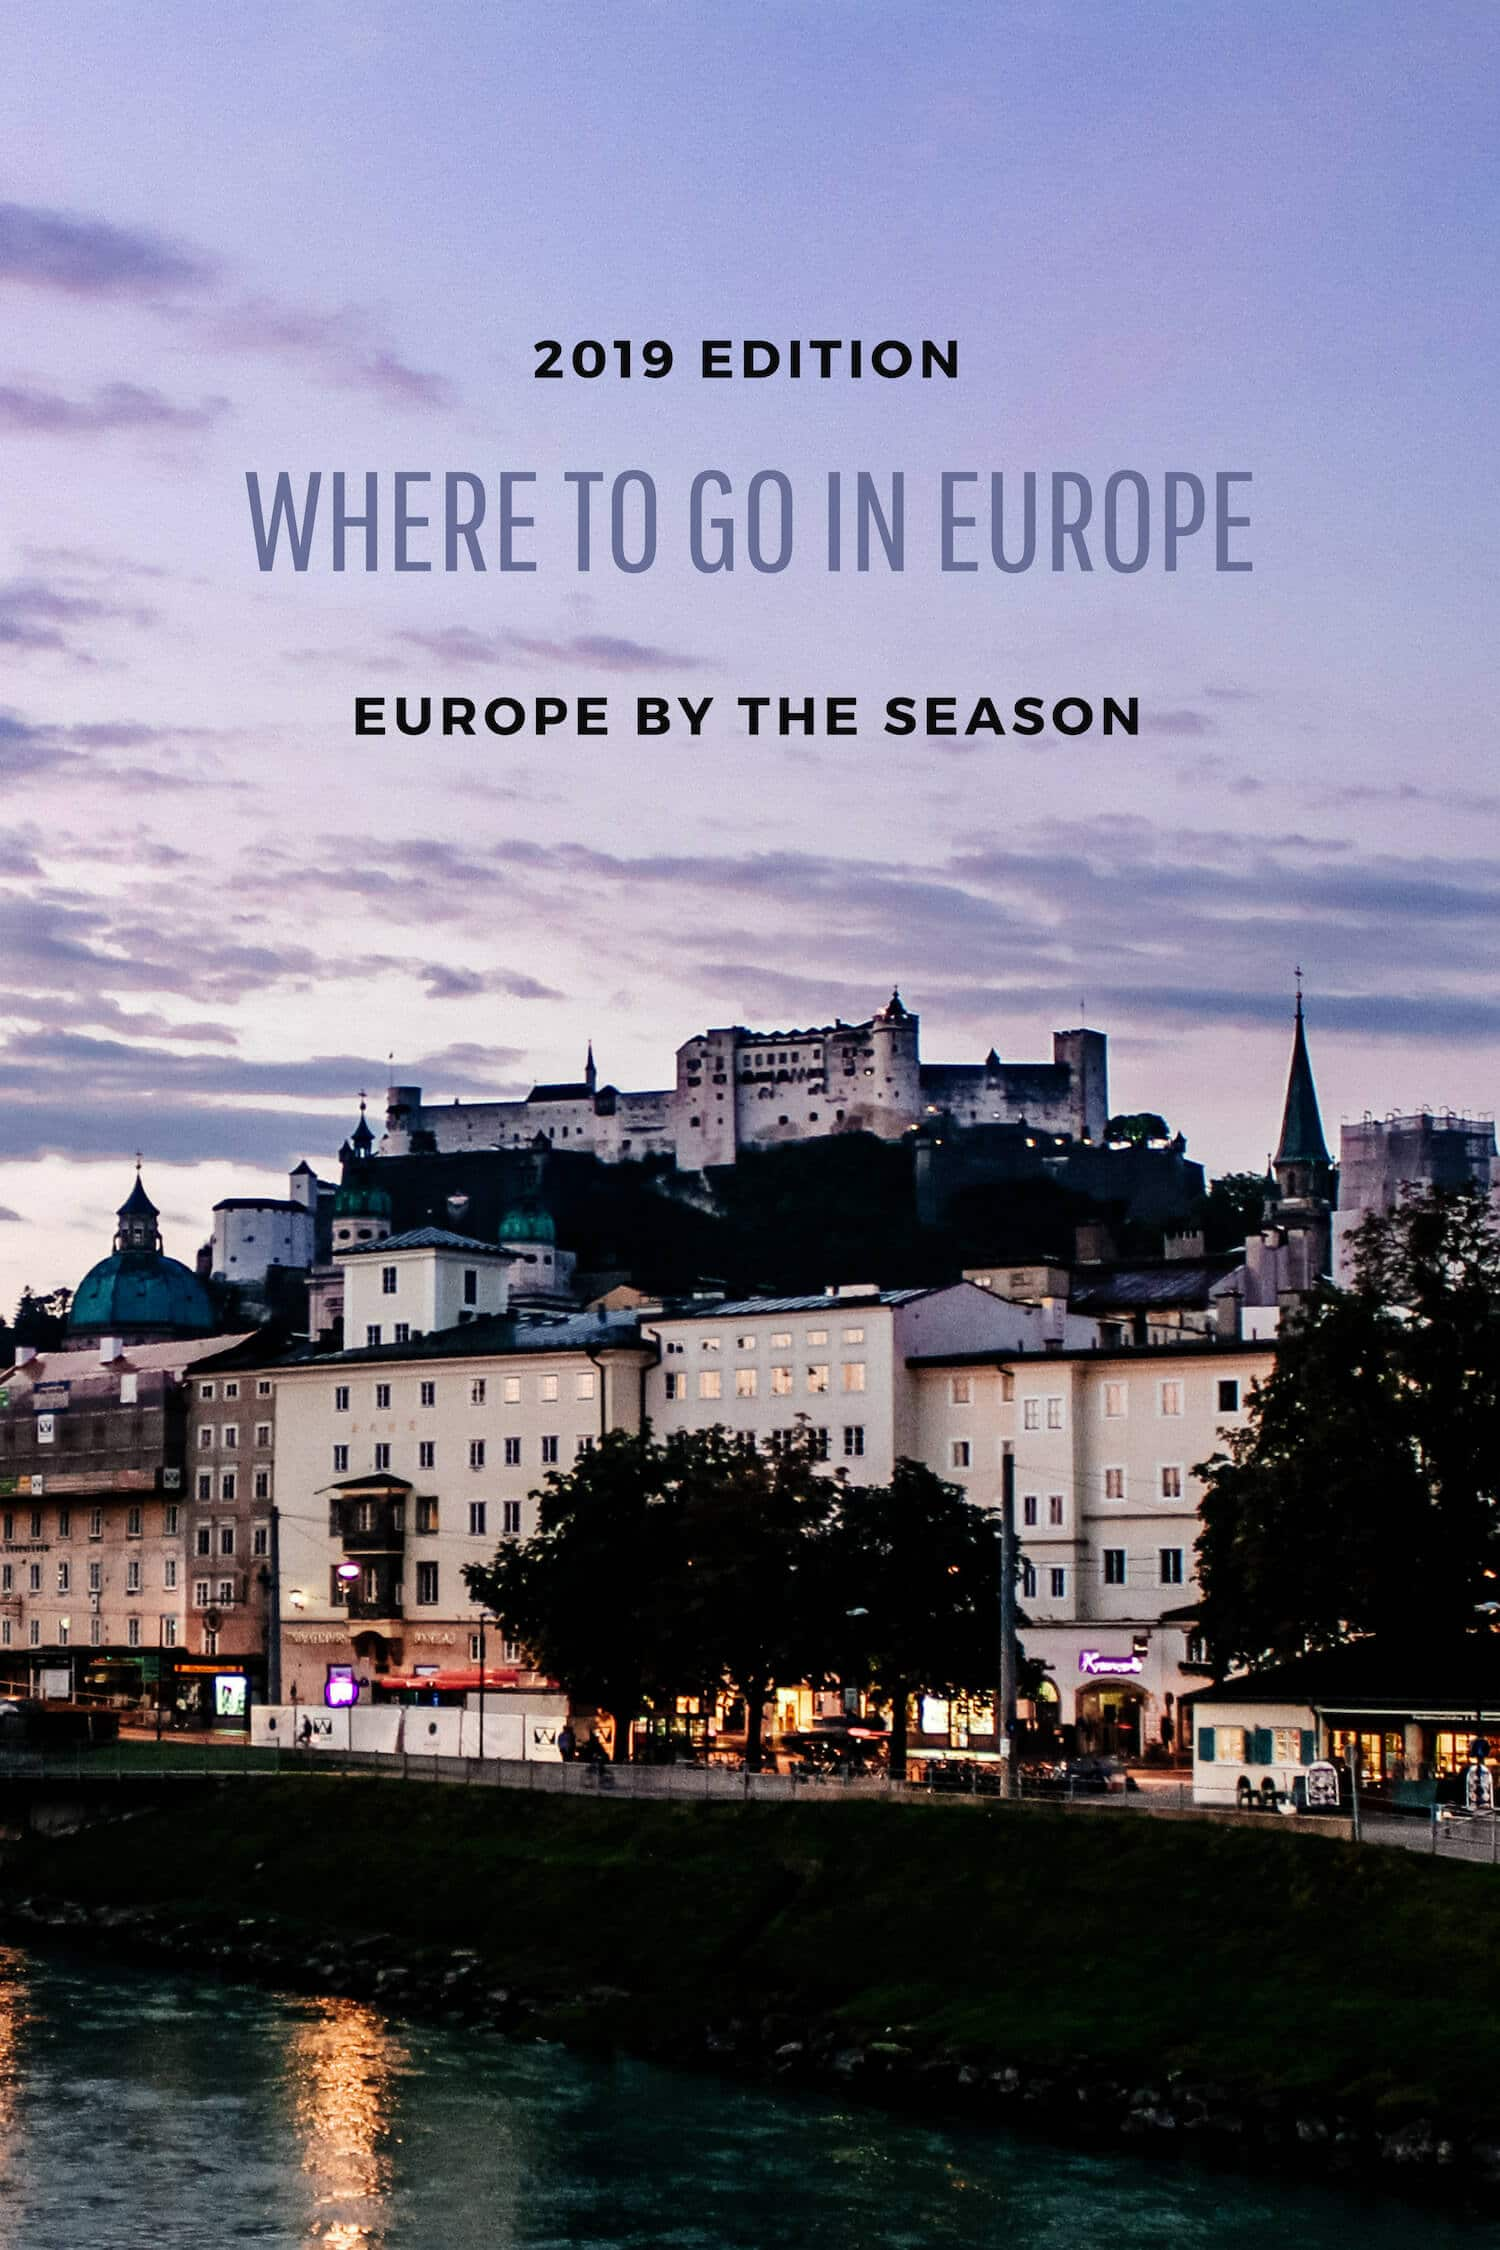 Where to travel in Europe in 2019